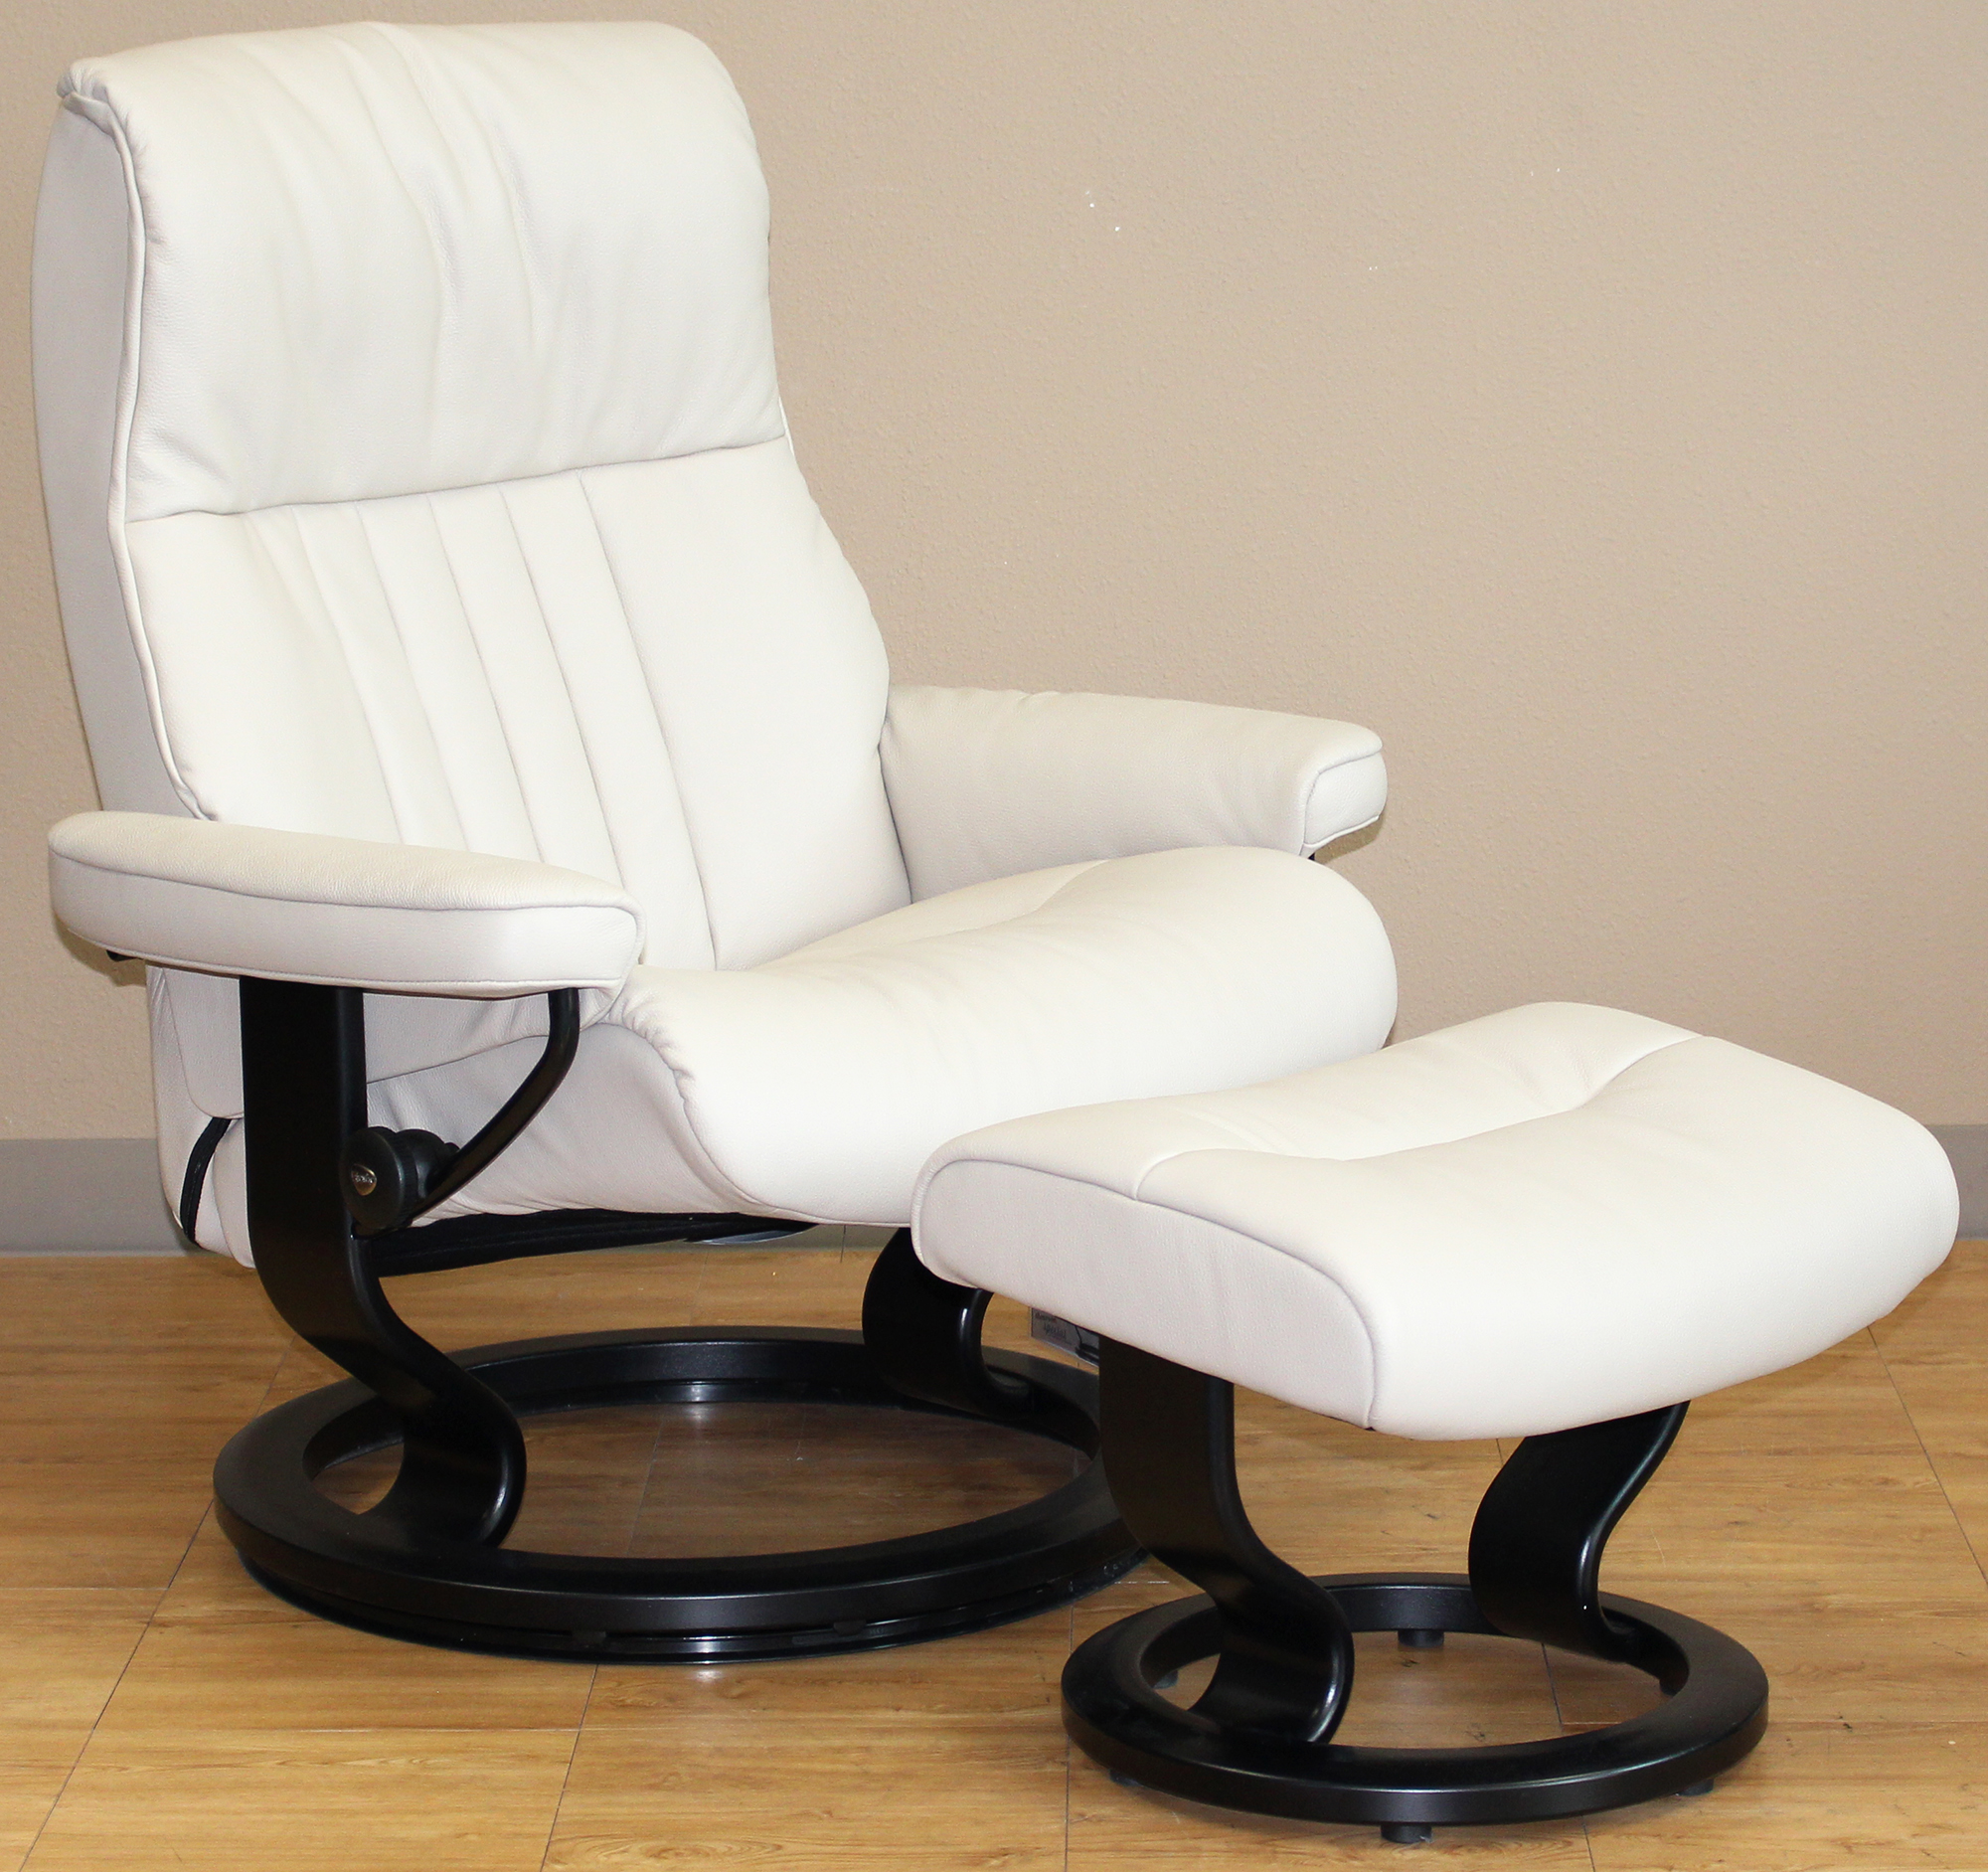 Stressless crown cori vanilla white leather recliner chair for Stressless chair